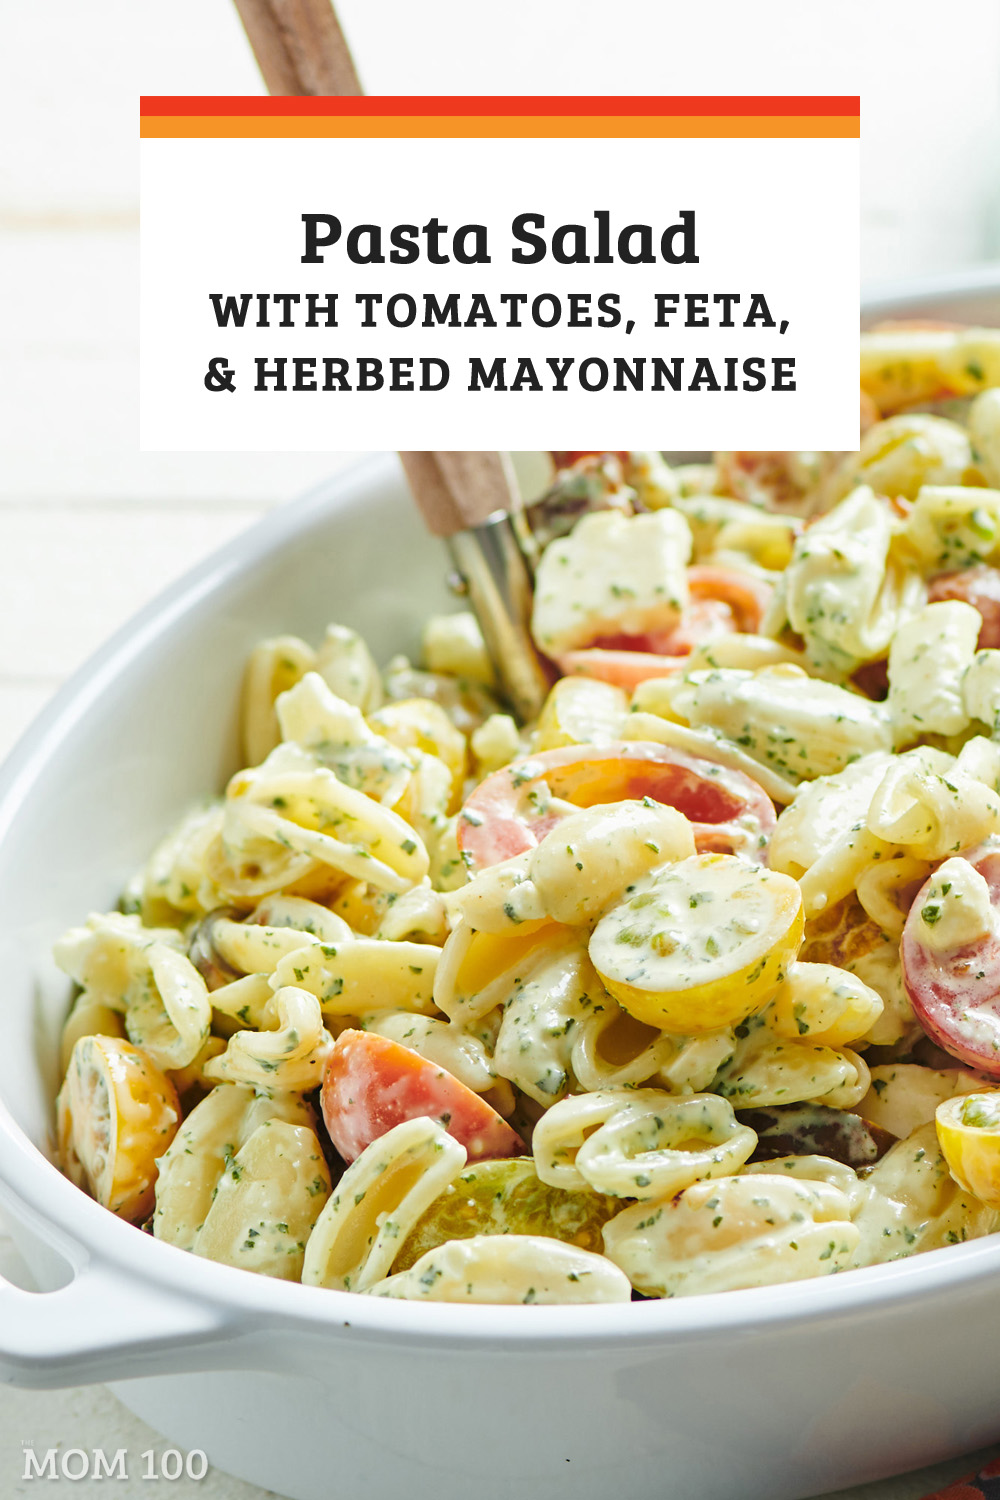 Pasta Salad with Tomatoes, Feta and Herbed Mayonnaise: A quick summery meal that can be made ahead. Skip the bacon for a vegetarian side. #pastasalad #summer